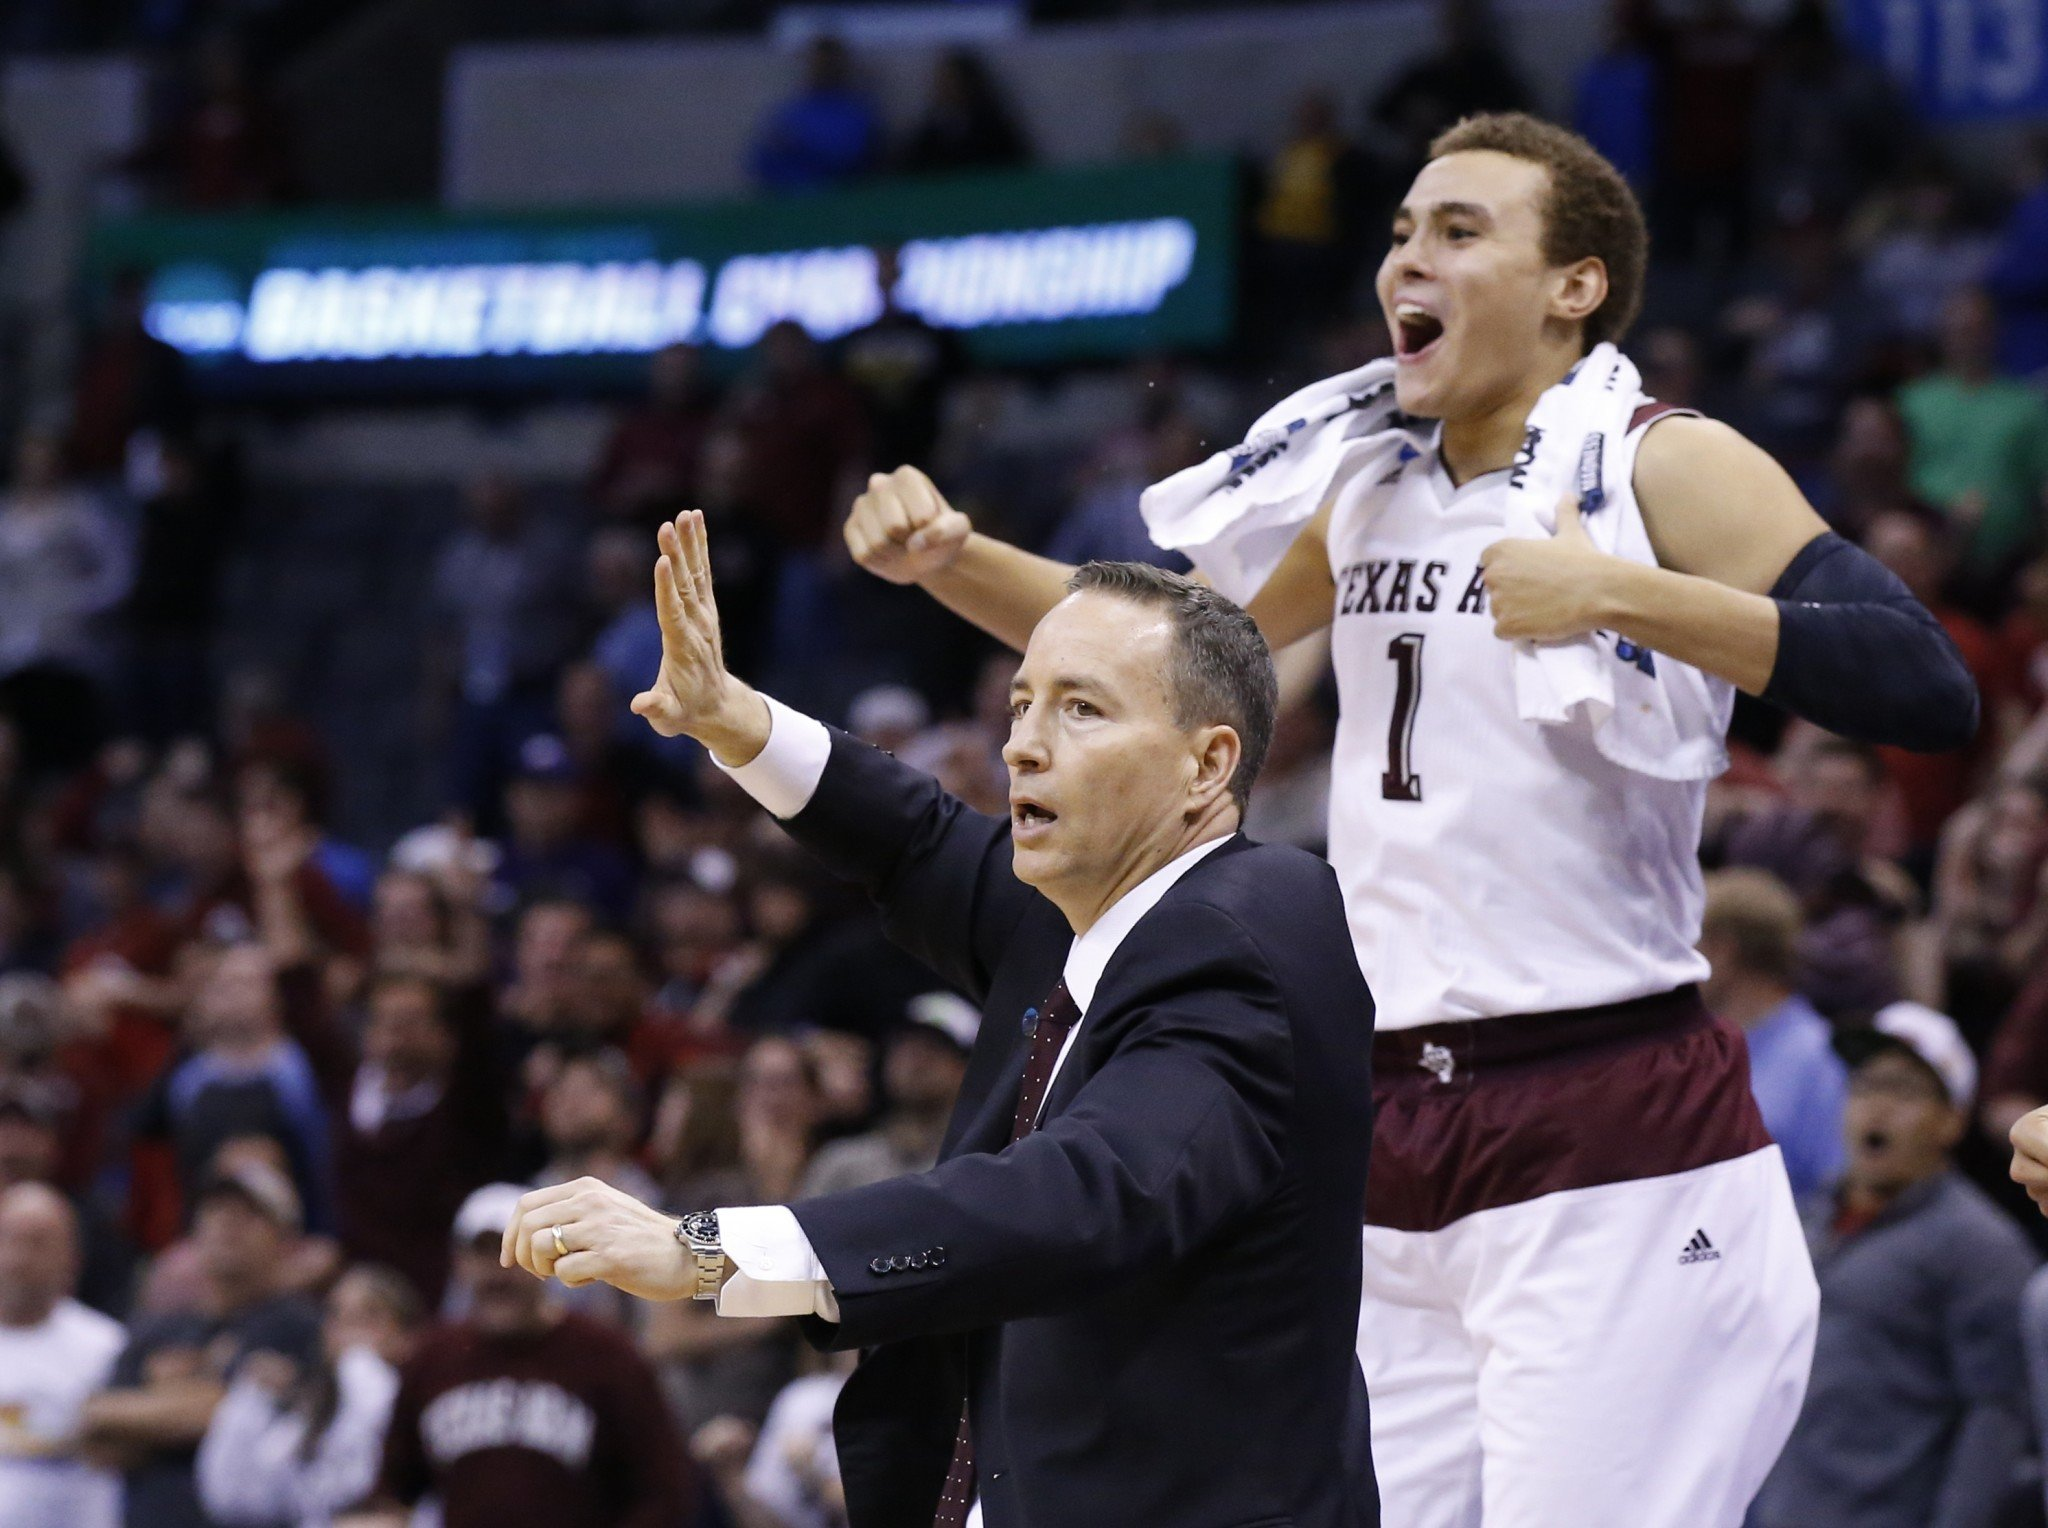 Texas A&M picked up its tenth win of the season on a controversial ending. (AP Photo/Sue Ogrocki)